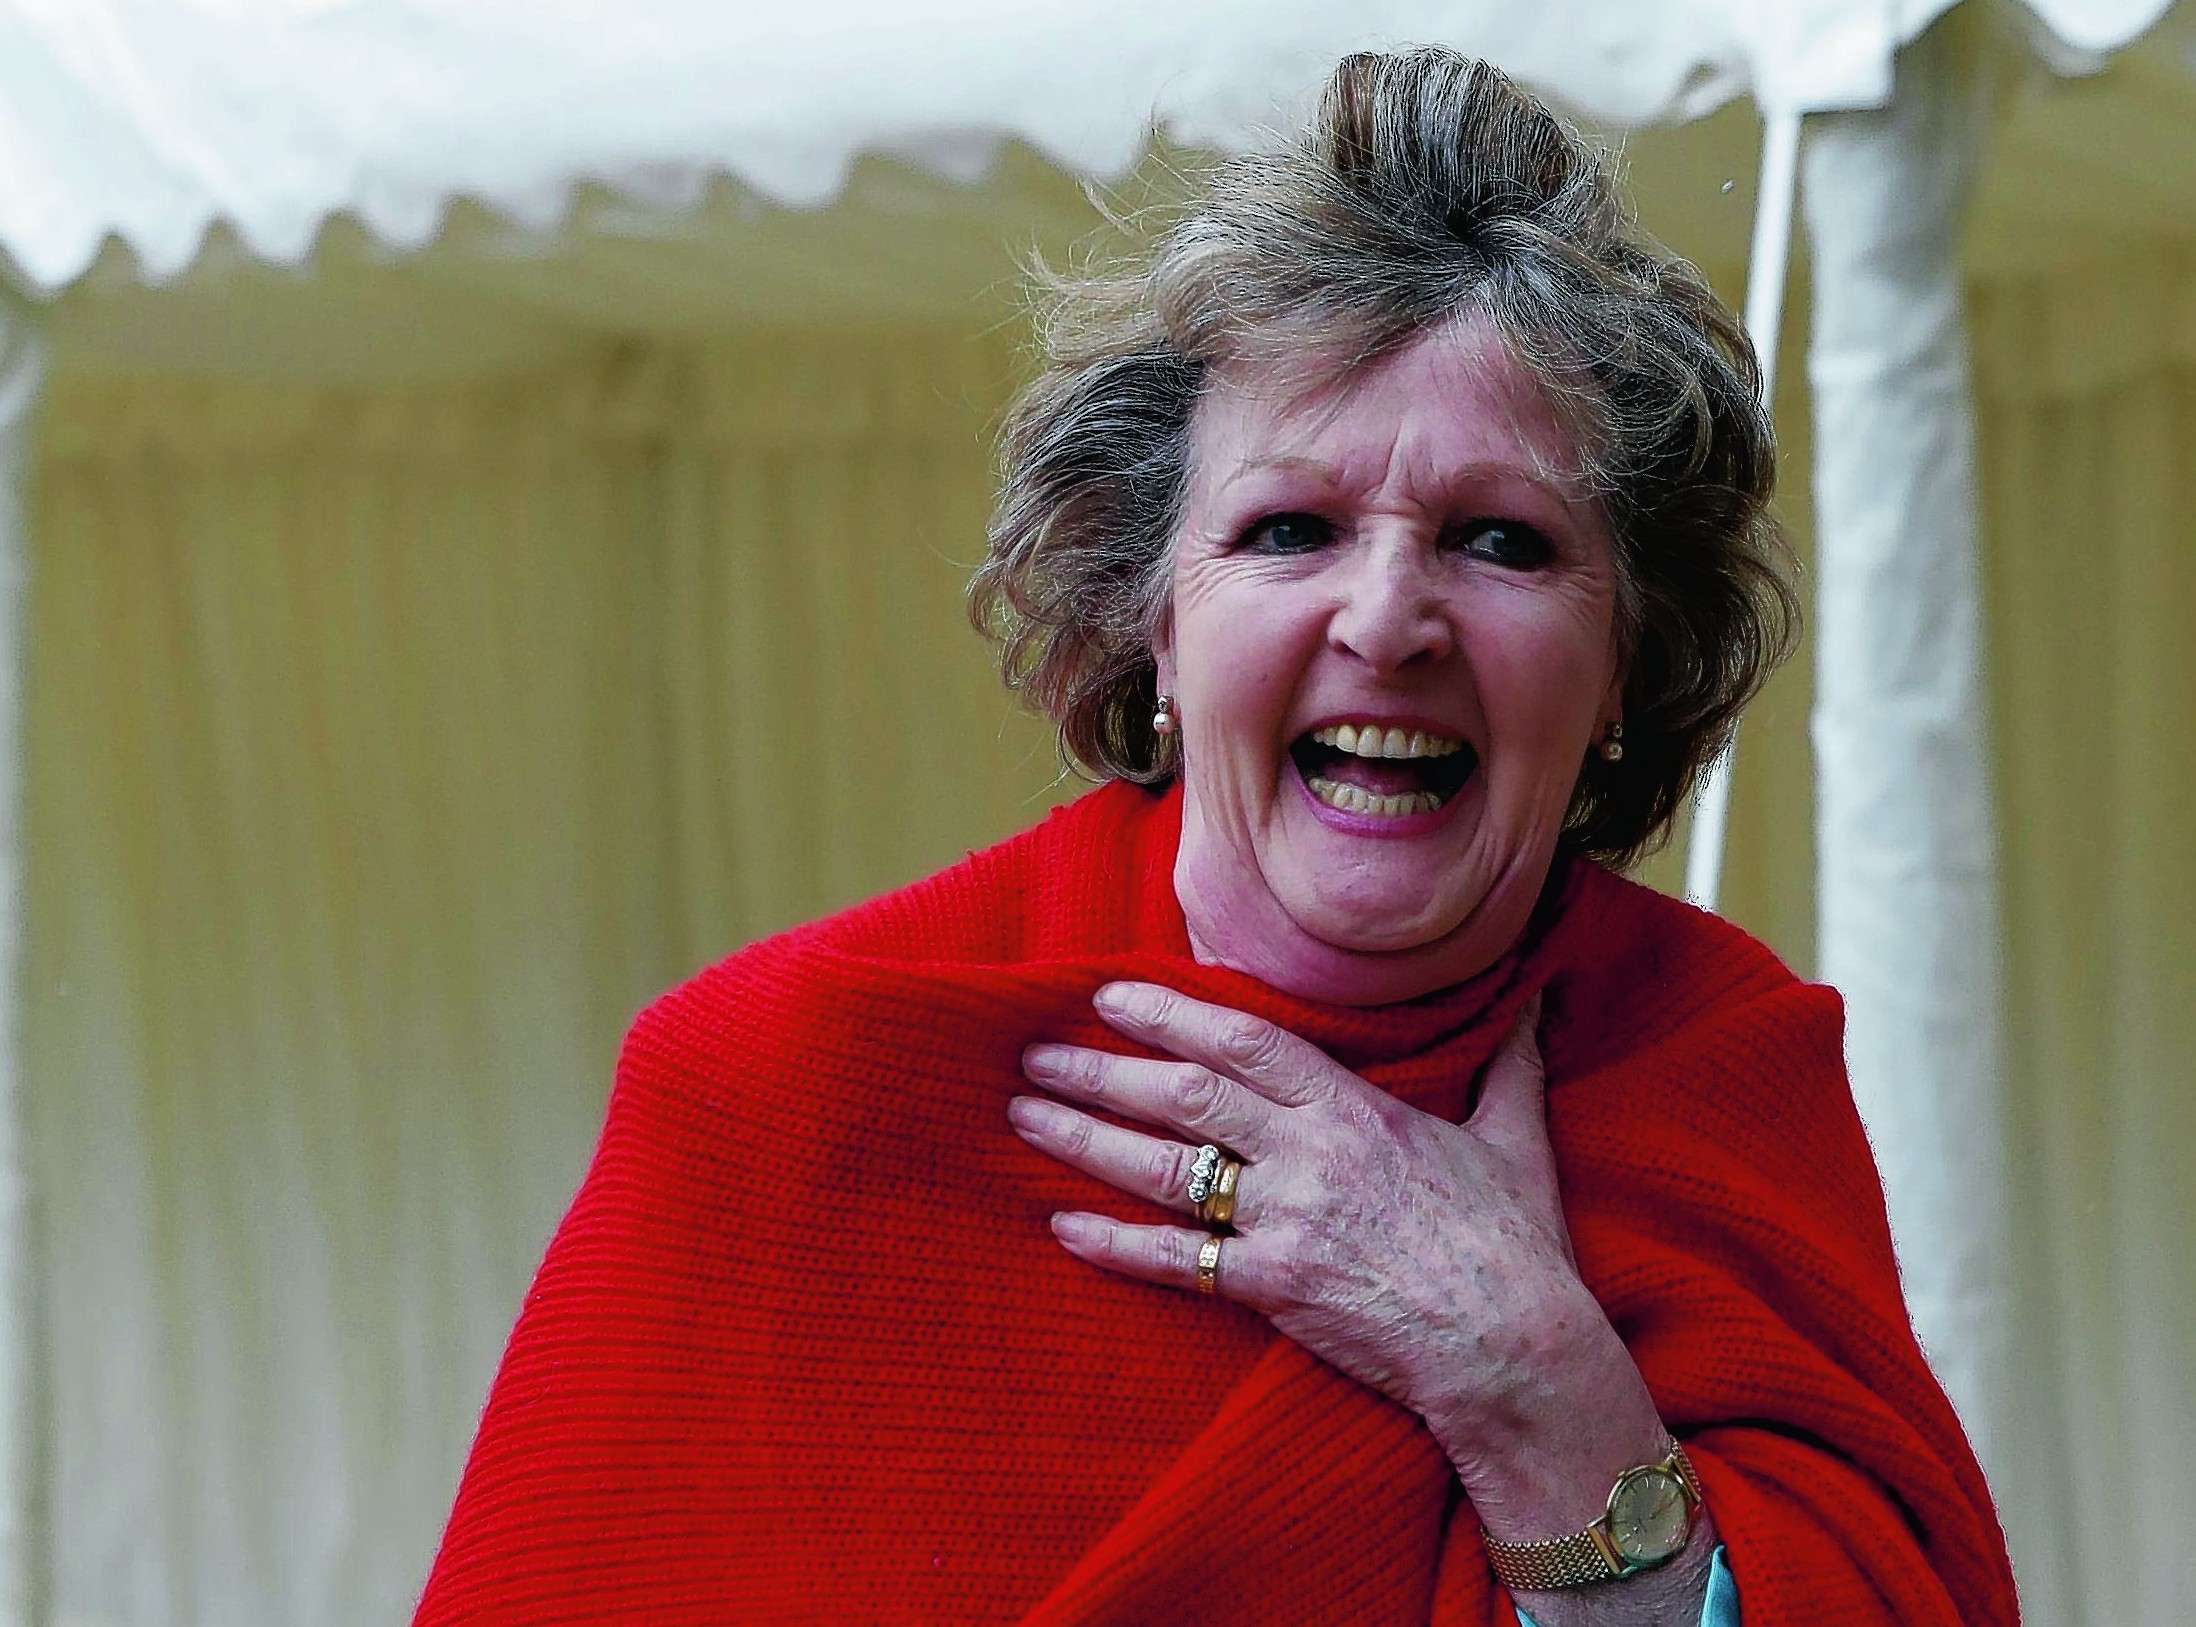 Penelope Keith nudes (25 photos), Sexy, Cleavage, Boobs, butt 2017